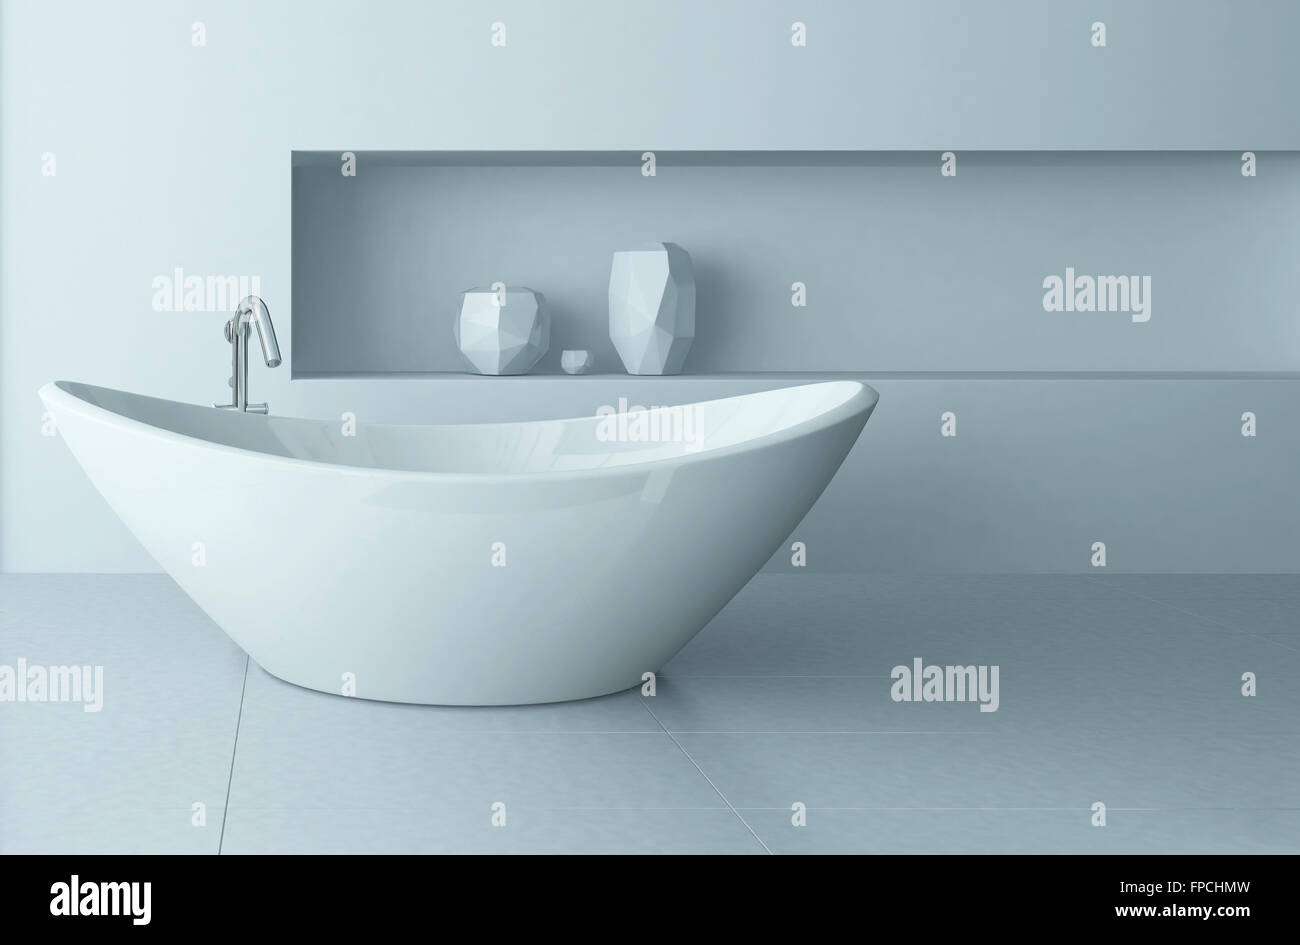 Bathtub Boat Stock Photos & Bathtub Boat Stock Images - Alamy